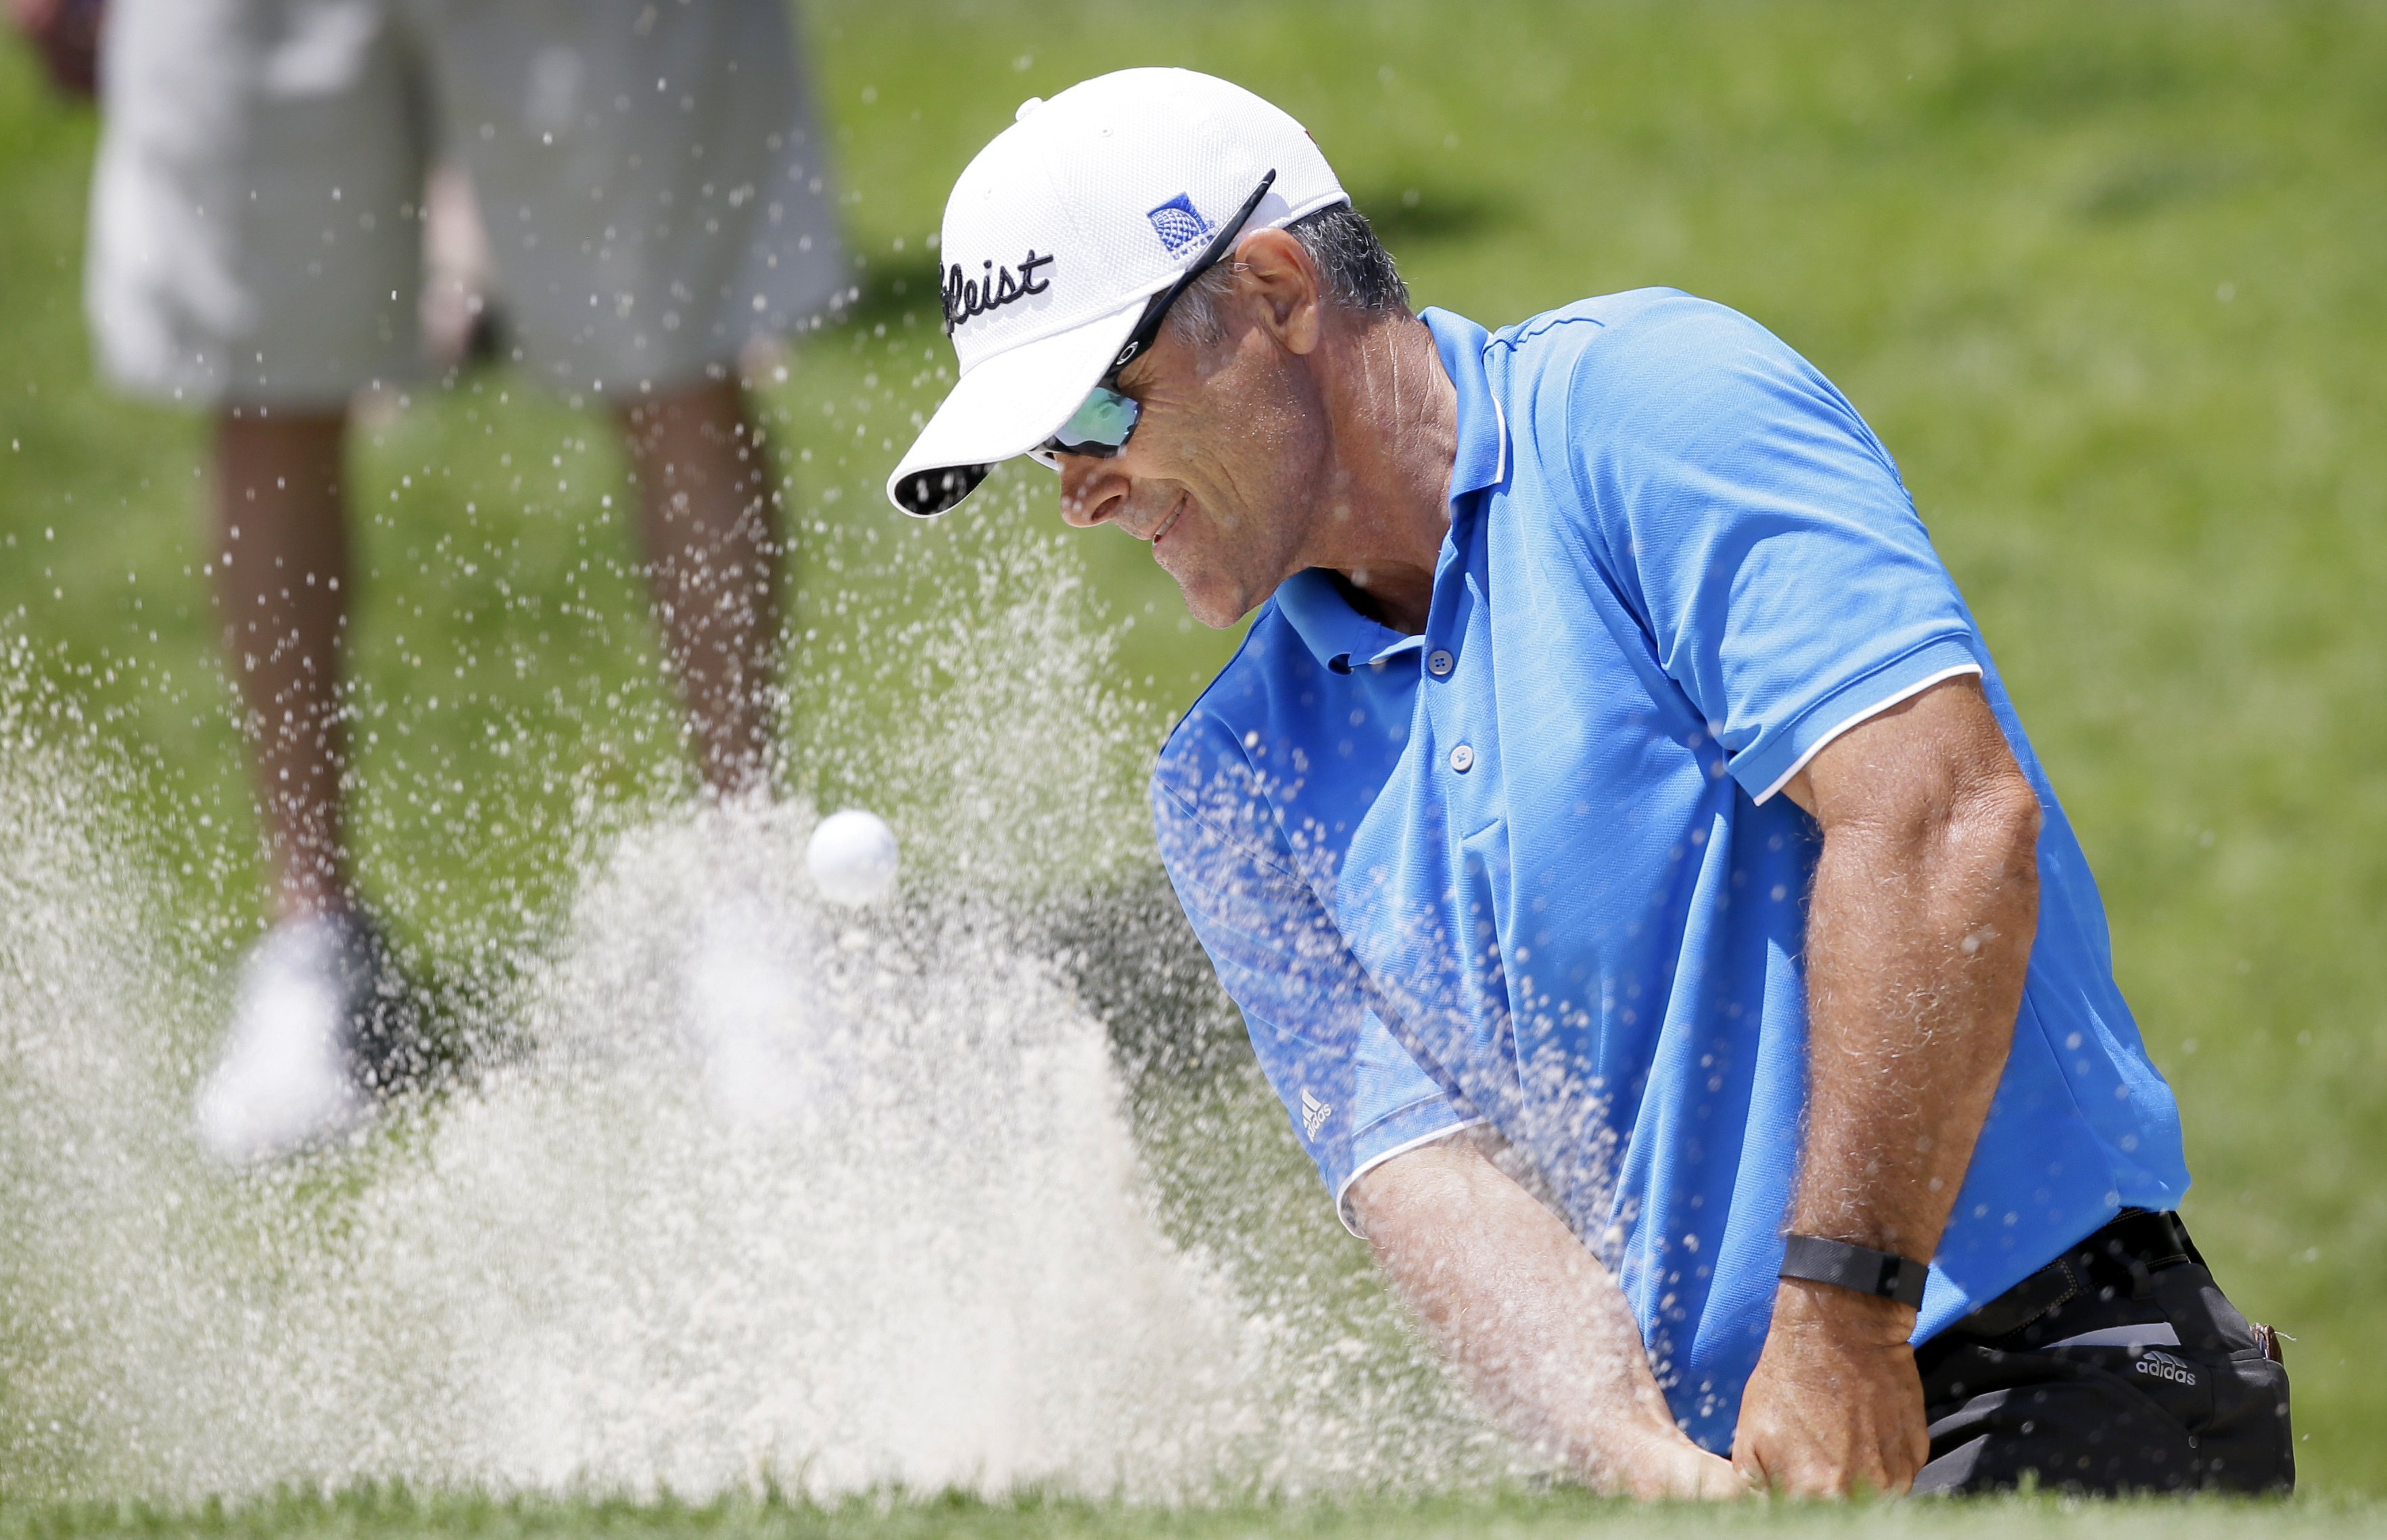 Tom Byrum hits out of a bunker onto the ninth green during the second round of the PGA Tour Champions Principal Charity Classic golf tournament, Saturday, June 4, 2016, in Des Moines, Iowa. (AP Photo/Charlie